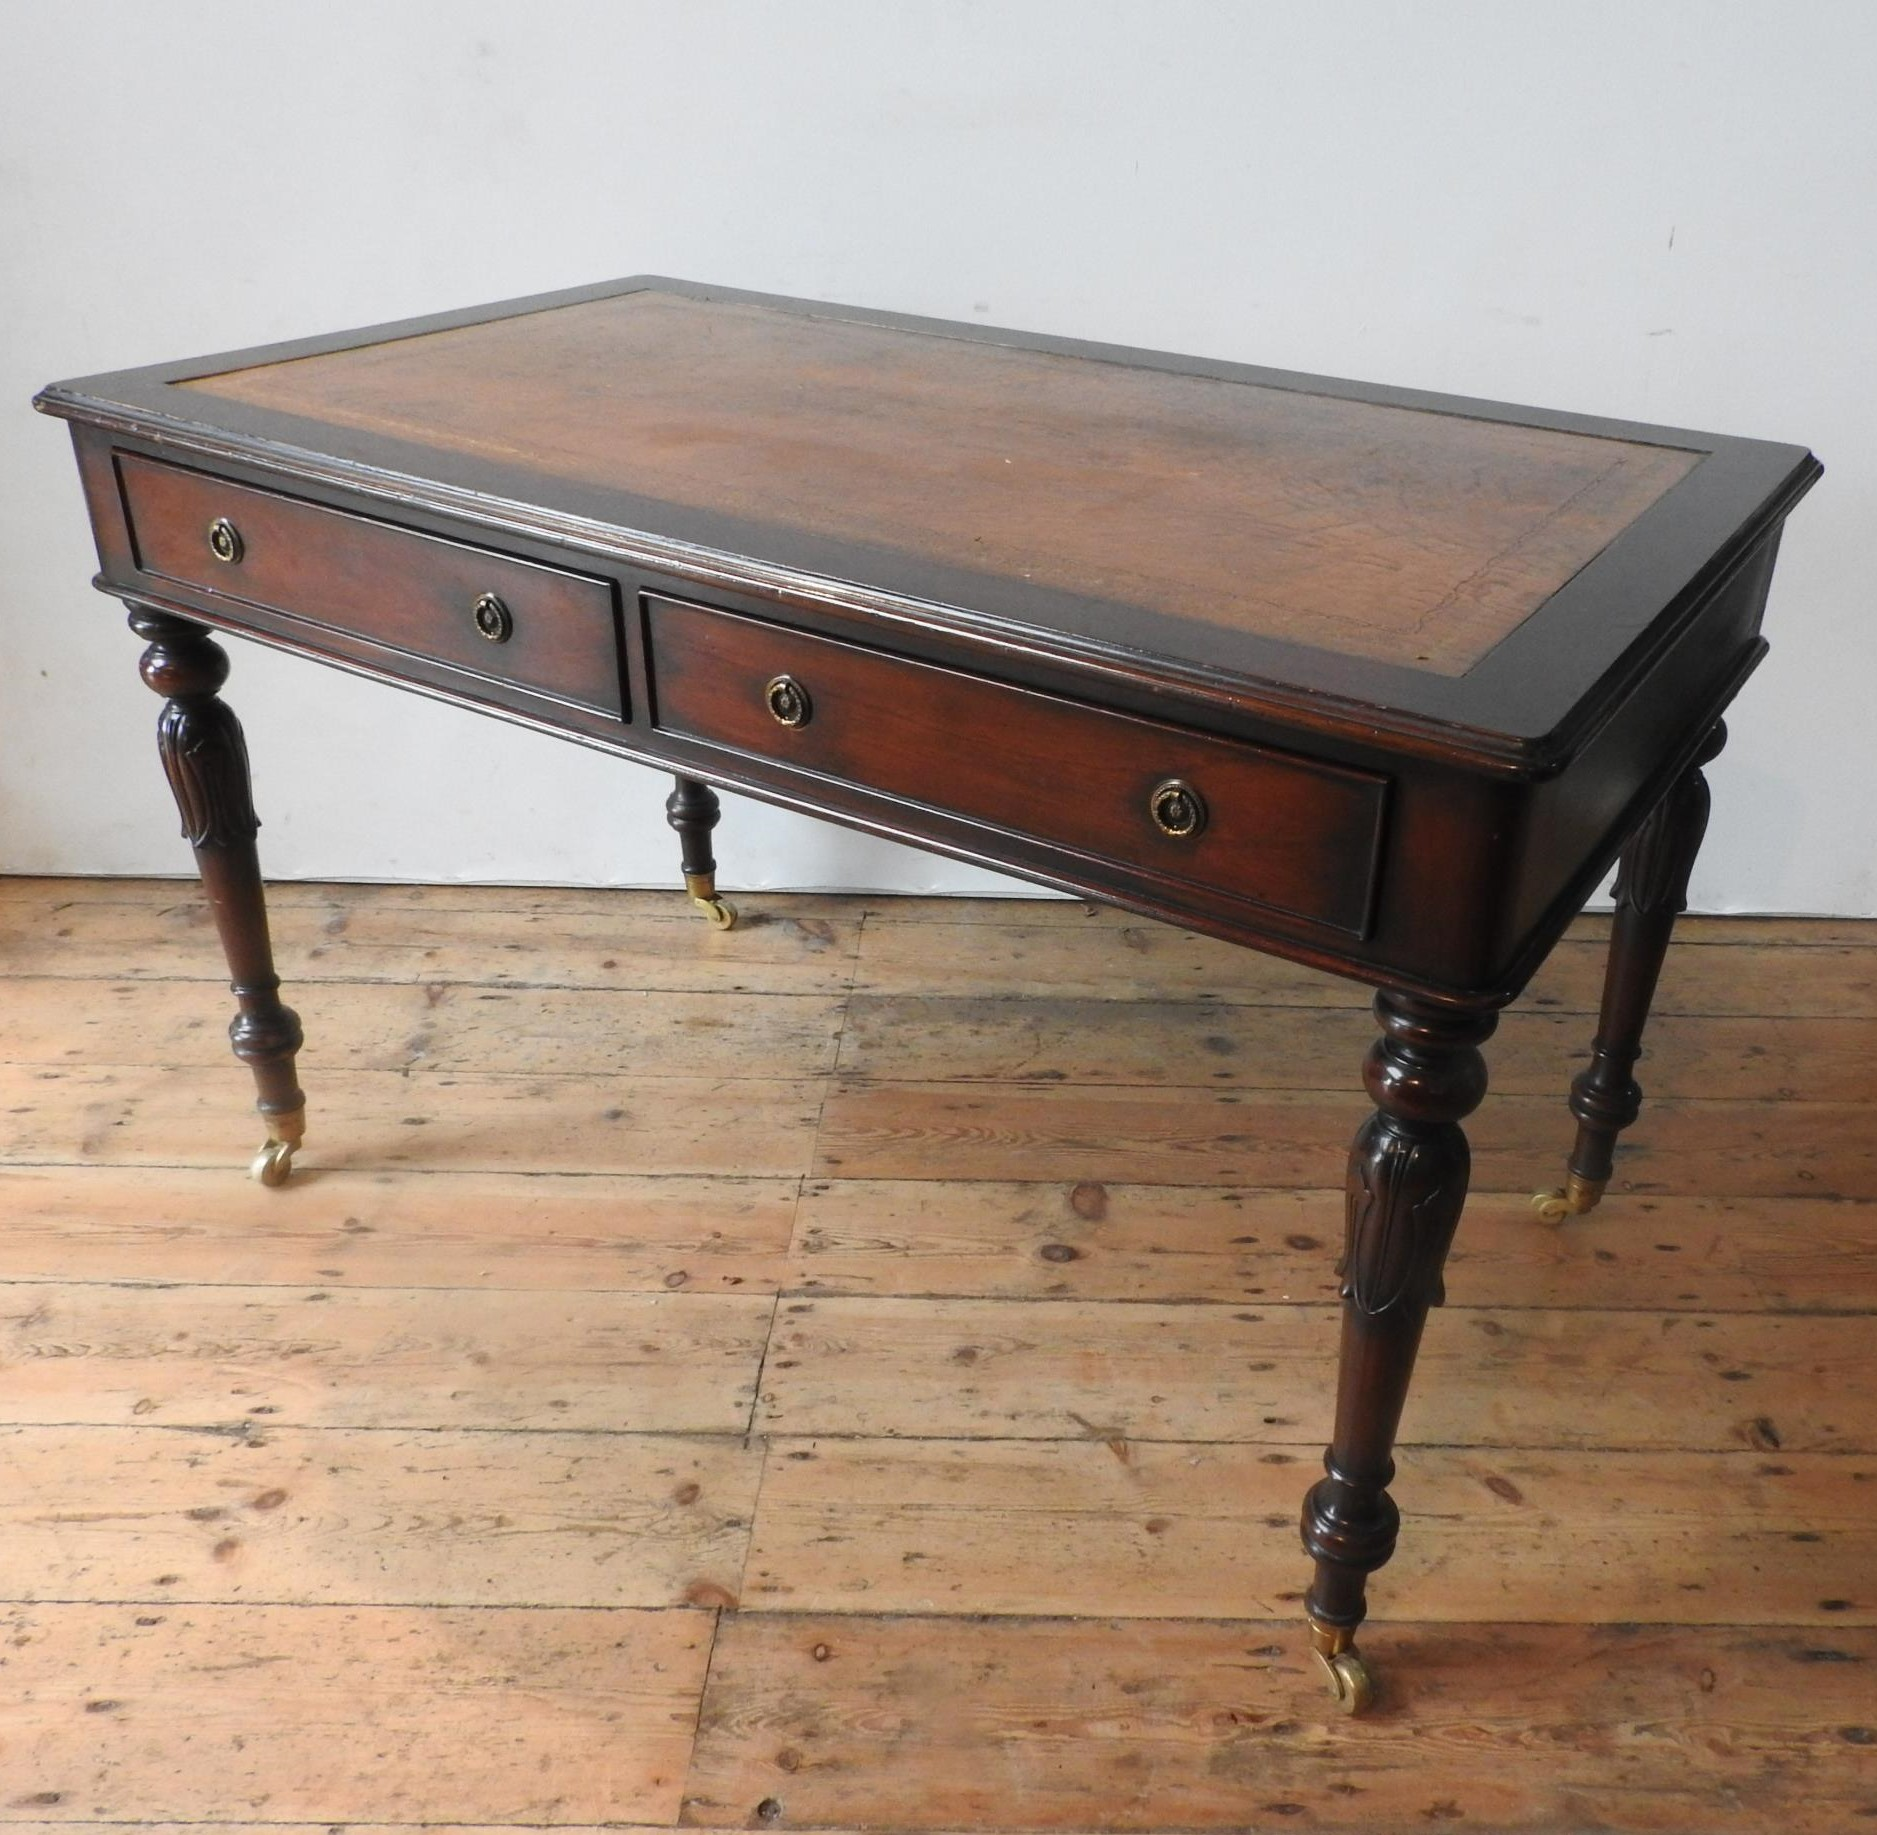 A 20TH CENTURY MAHOGANY REGENCY STYLE LIBRARY TABLE, with leather top, the legs carved with tulip